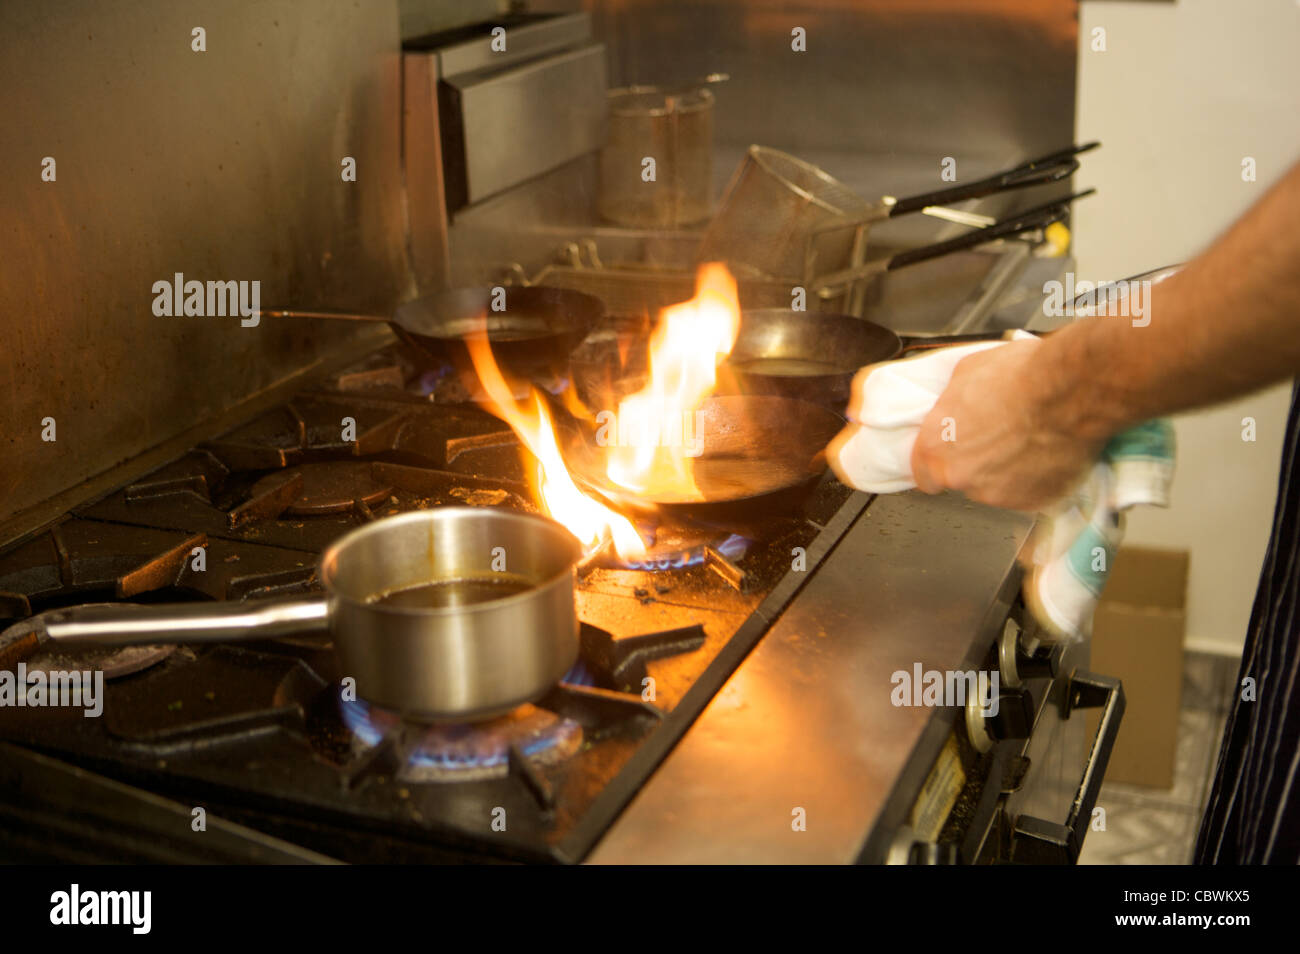 Industrial Cooker Stock Photos & Industrial Cooker Stock Images ...